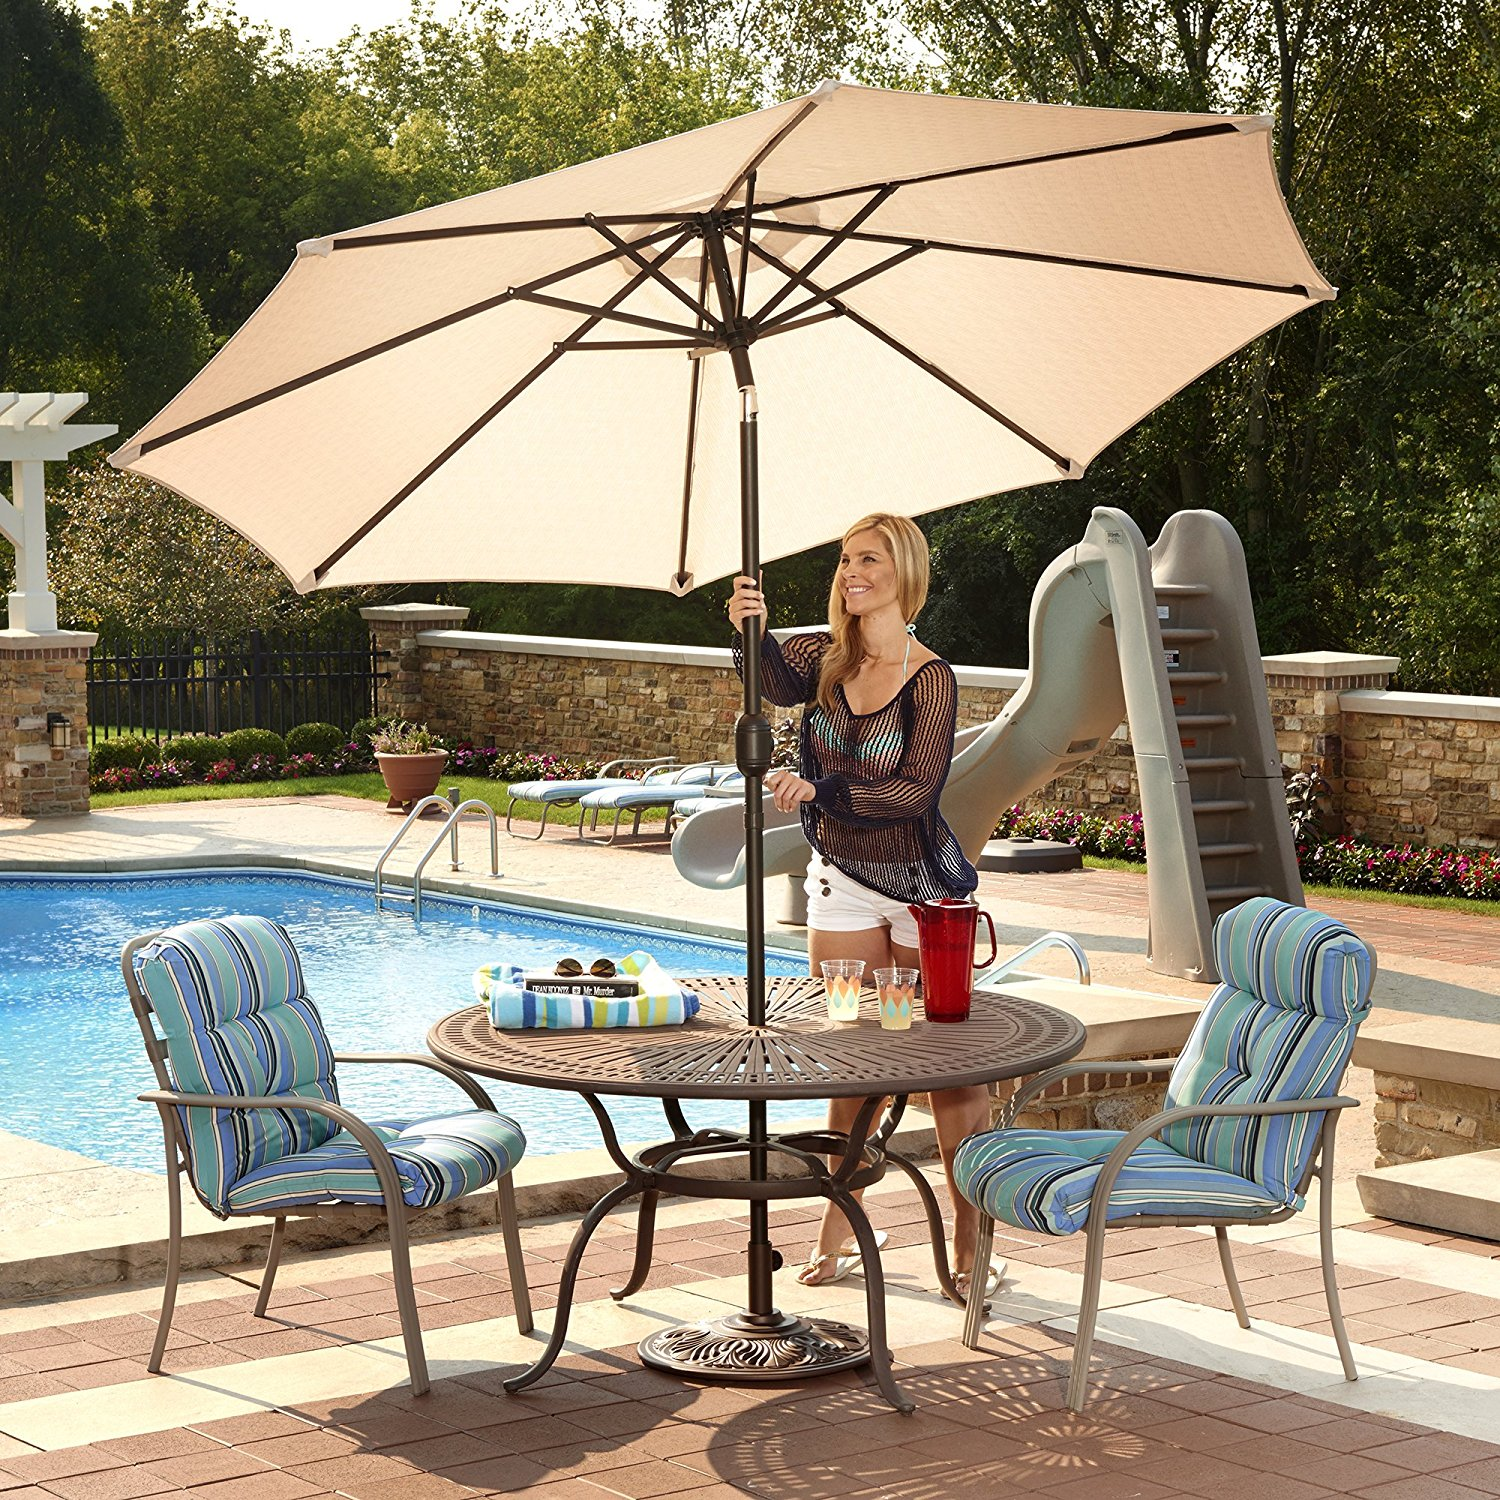 & Best Patio Umbrella Fabric For a Long Lasting Umbrella - OutsideModern